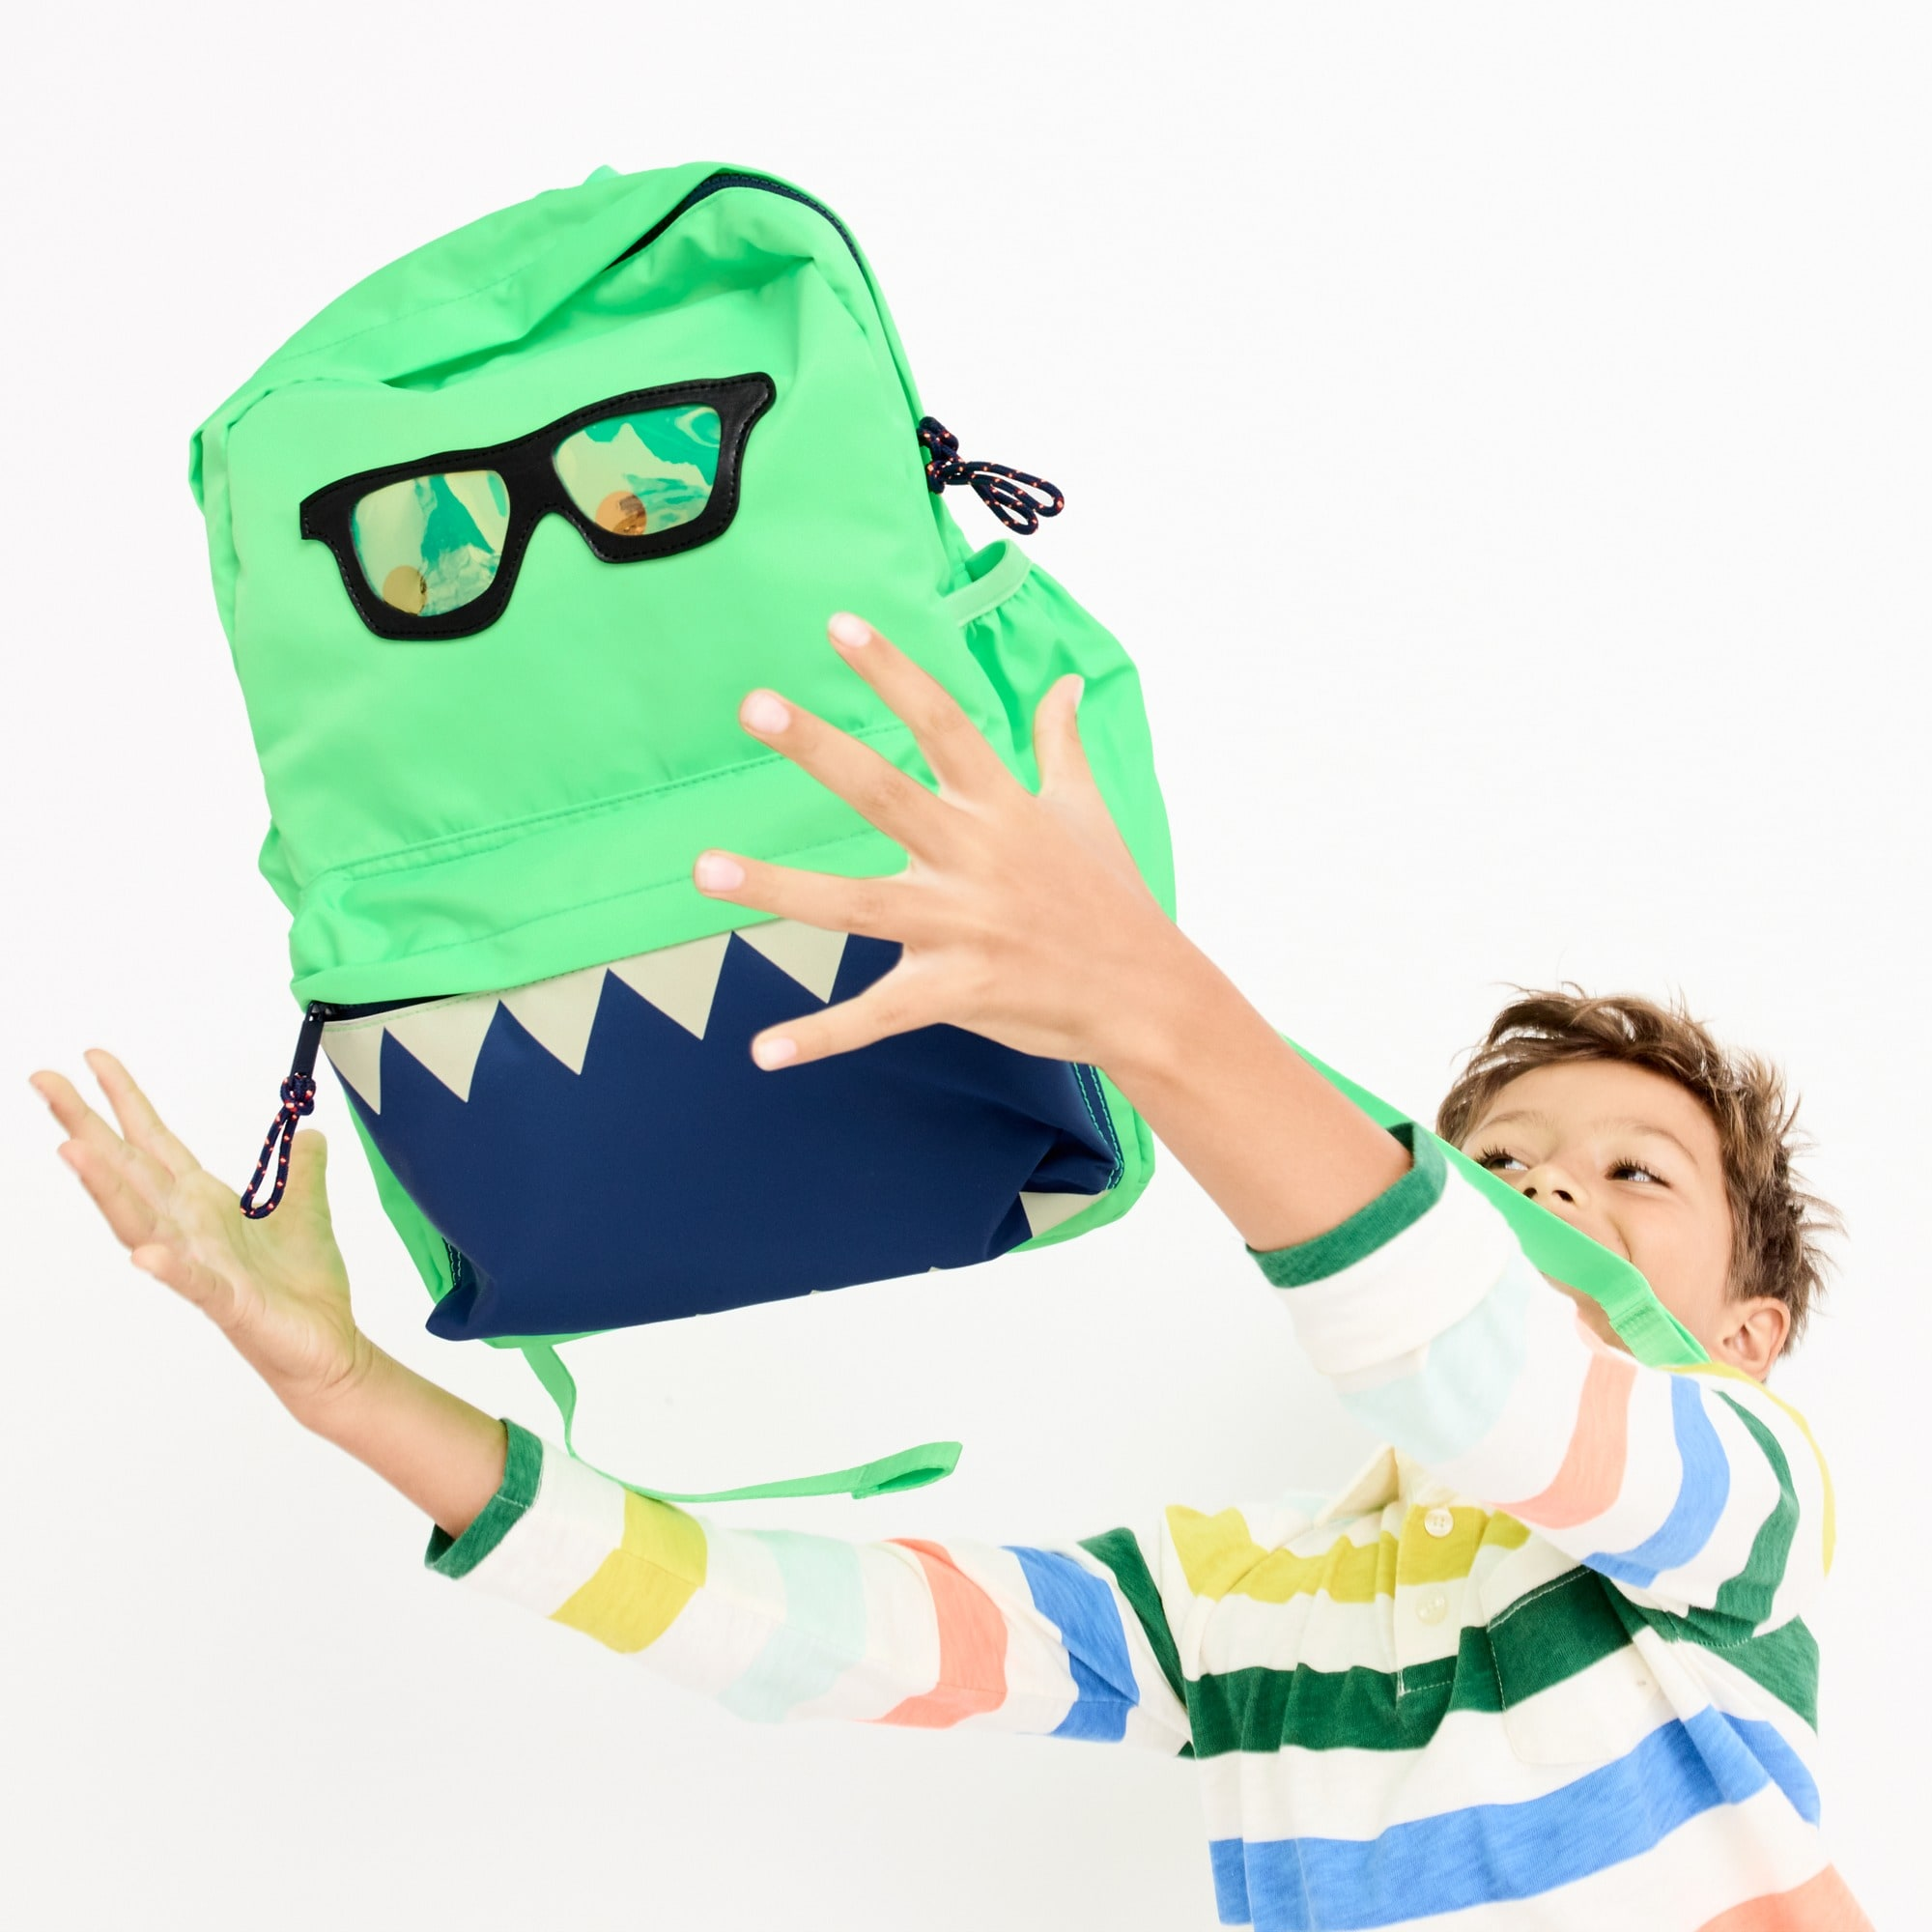 Image 1 for Kids' glow-in-the-dark snaggletooth monster backpack